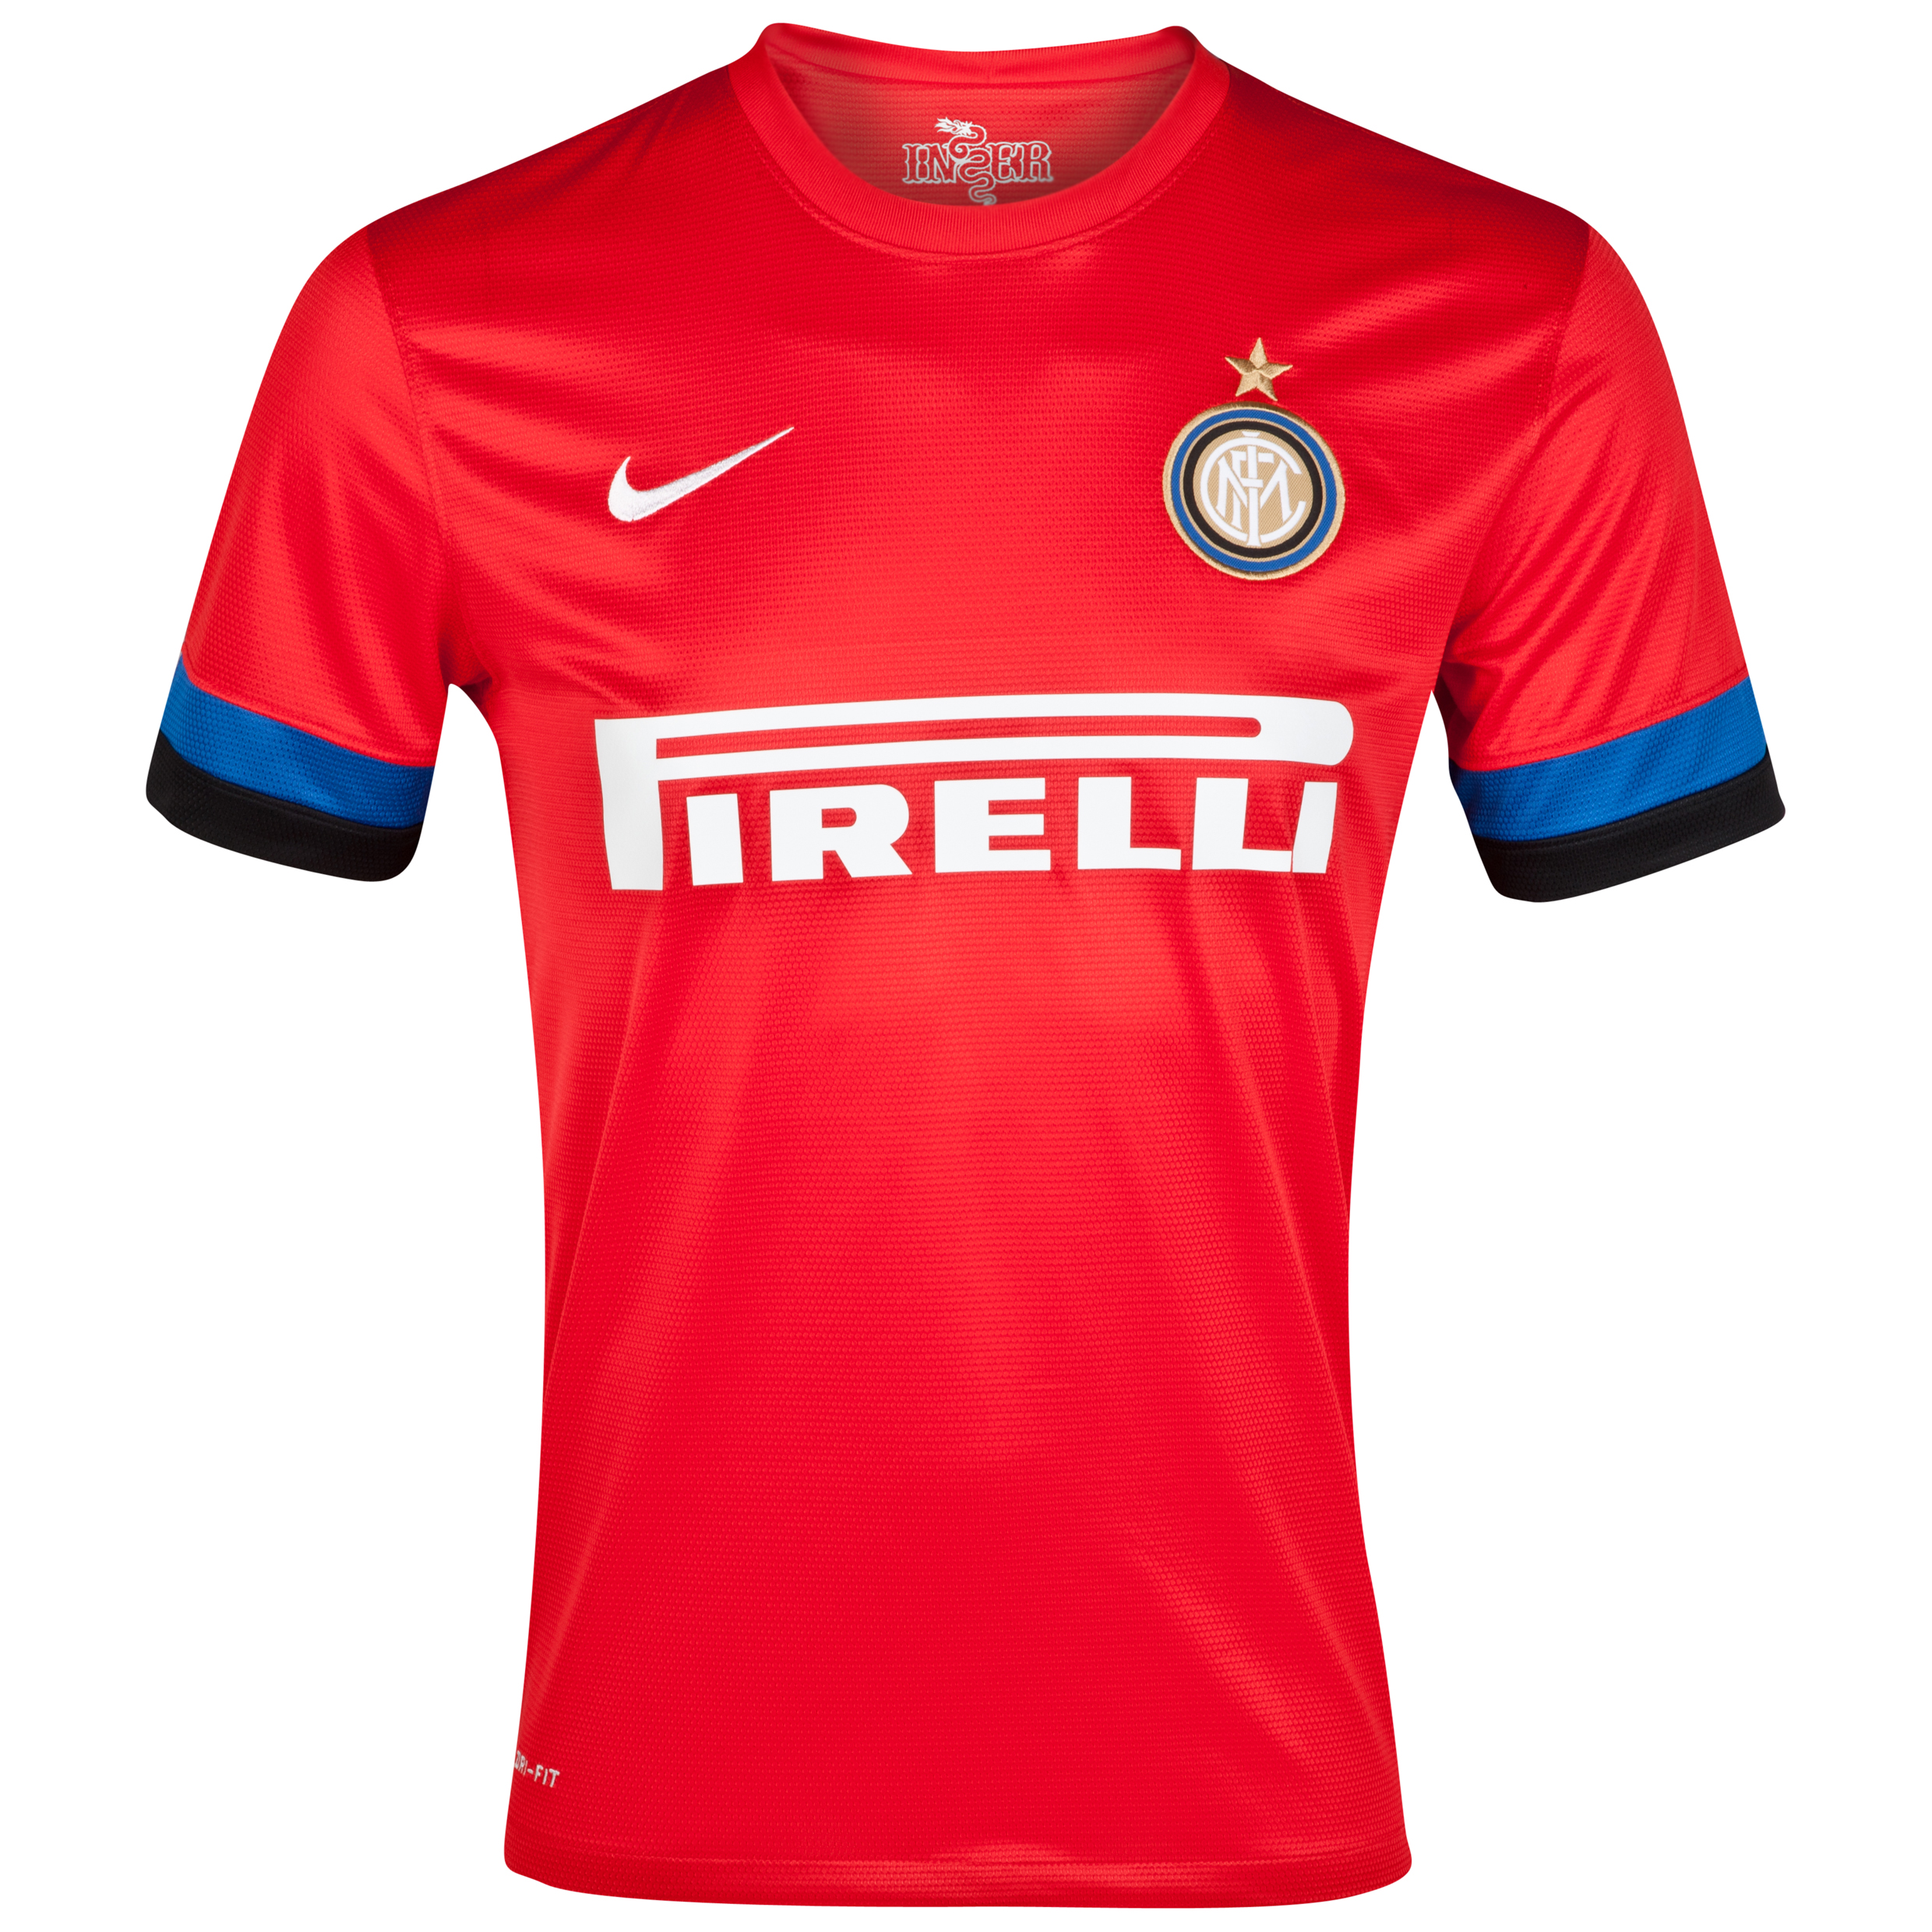 Inter Milan Away Shirt 2012/13